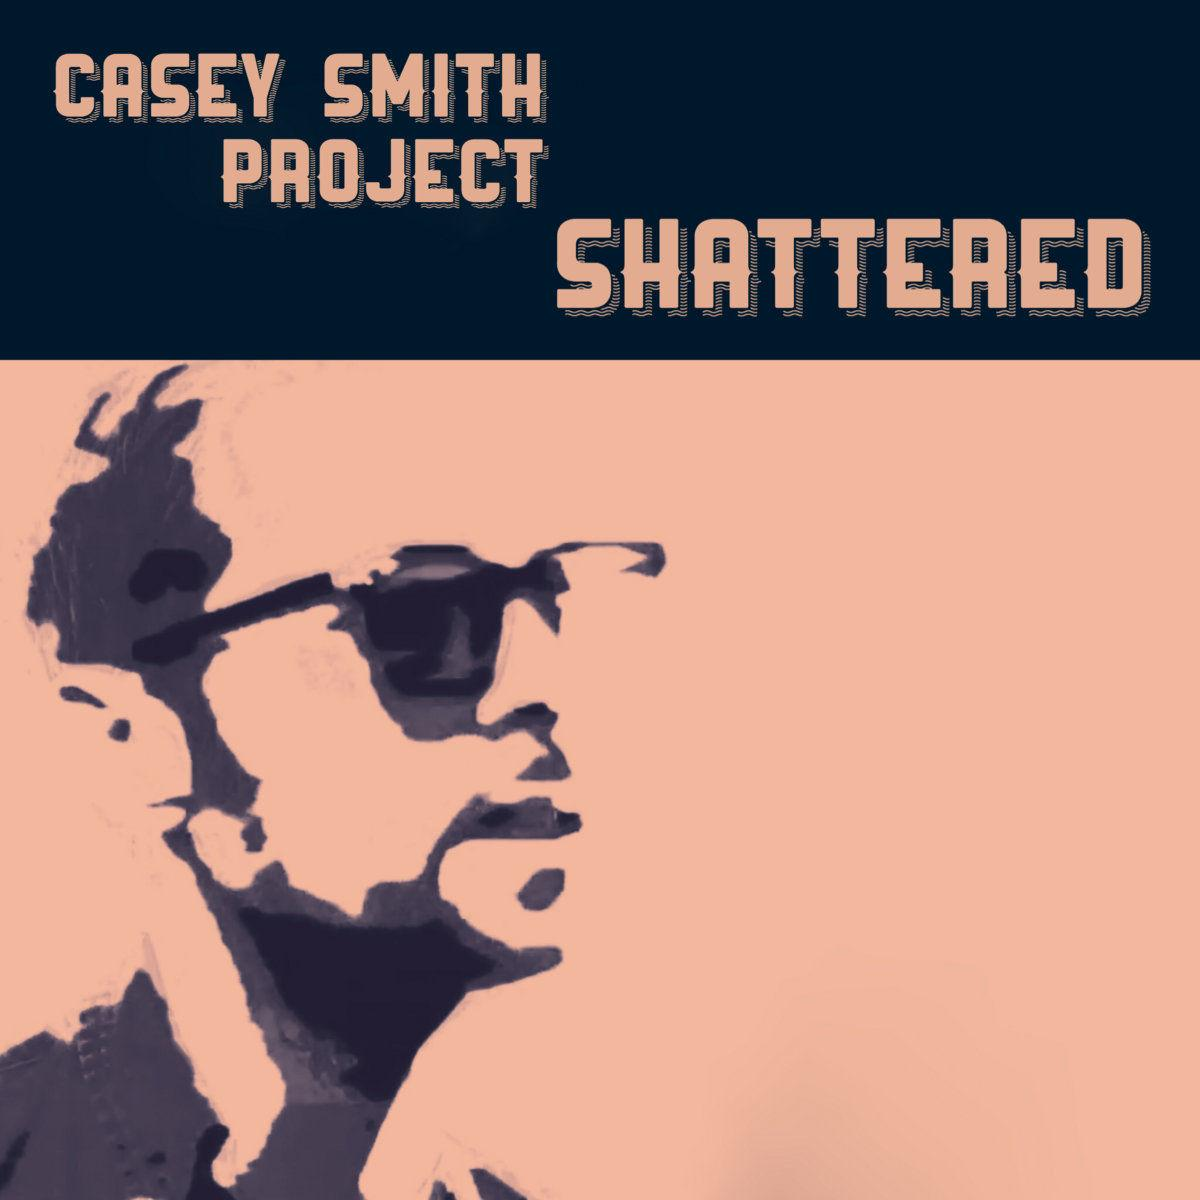 Casey Smith Project